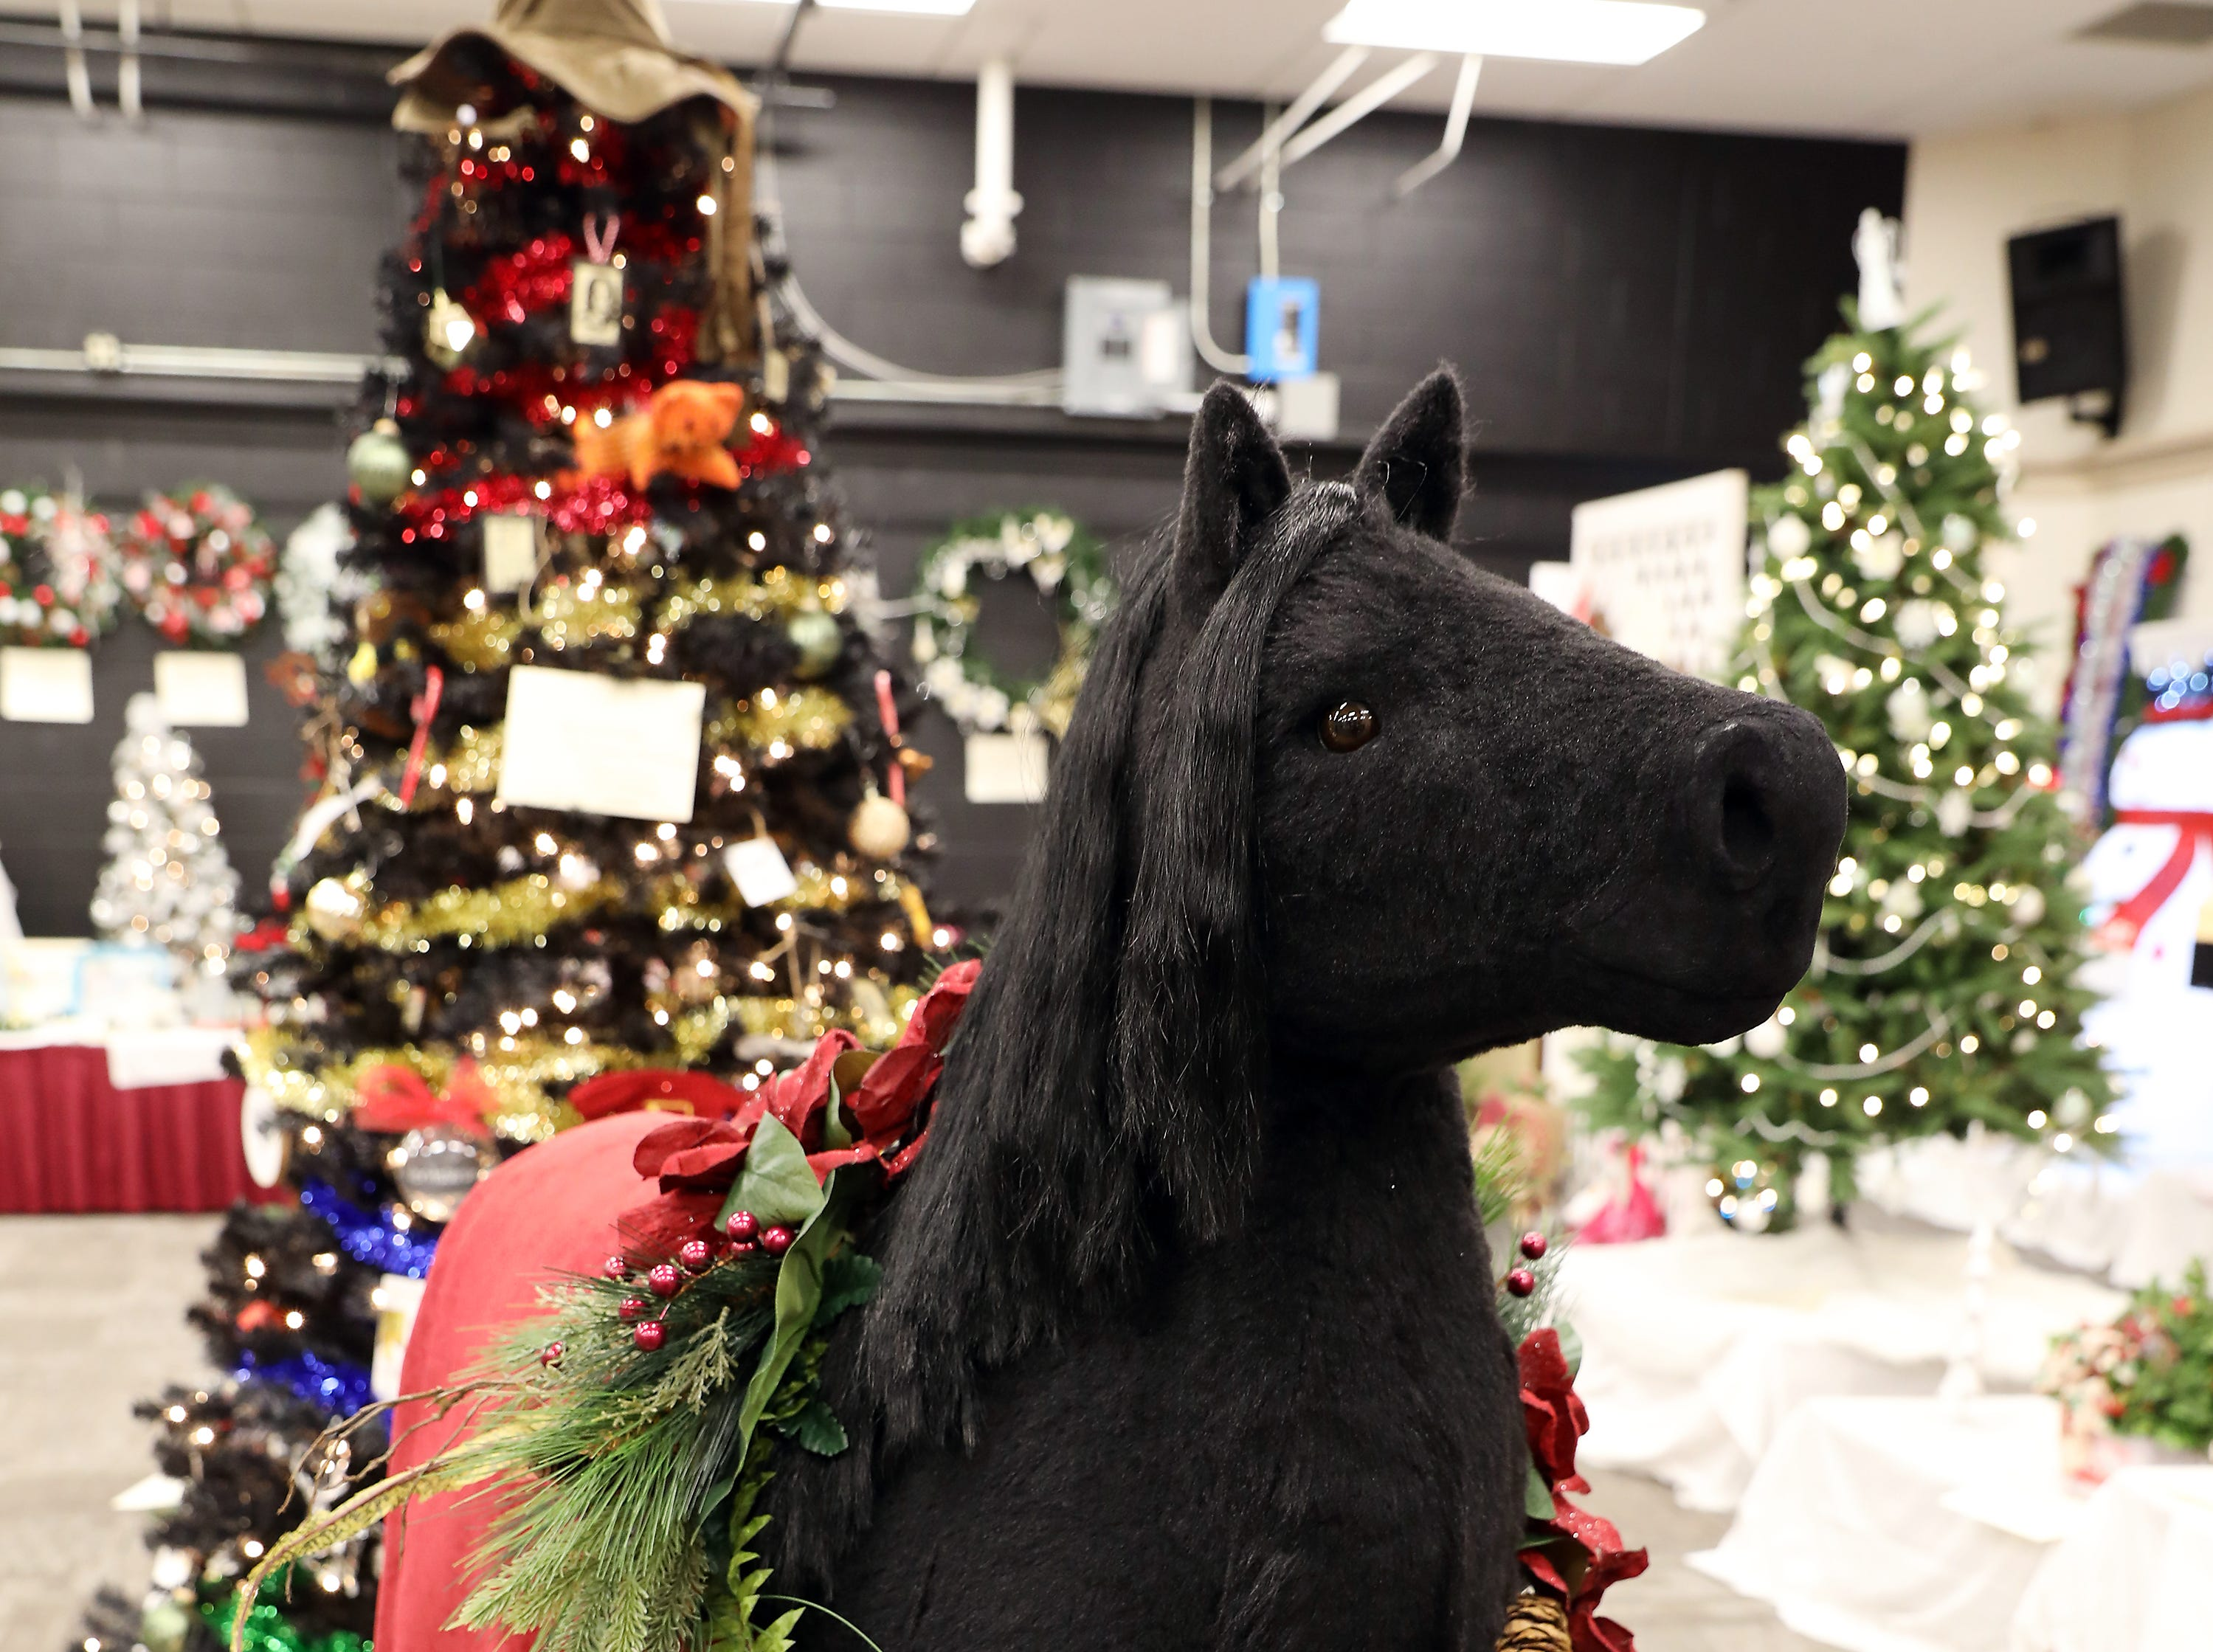 2035:00 PMQuality Care PartnersOtherThe Gift HorseThis thoroughbred is dressed in his black winter coat adorned in shades of Christmas Red2 tickets to the Columbus Blue Jackets game against the New Jersey Devils. Tuesday, January 15, 2019 at 7:00pm.